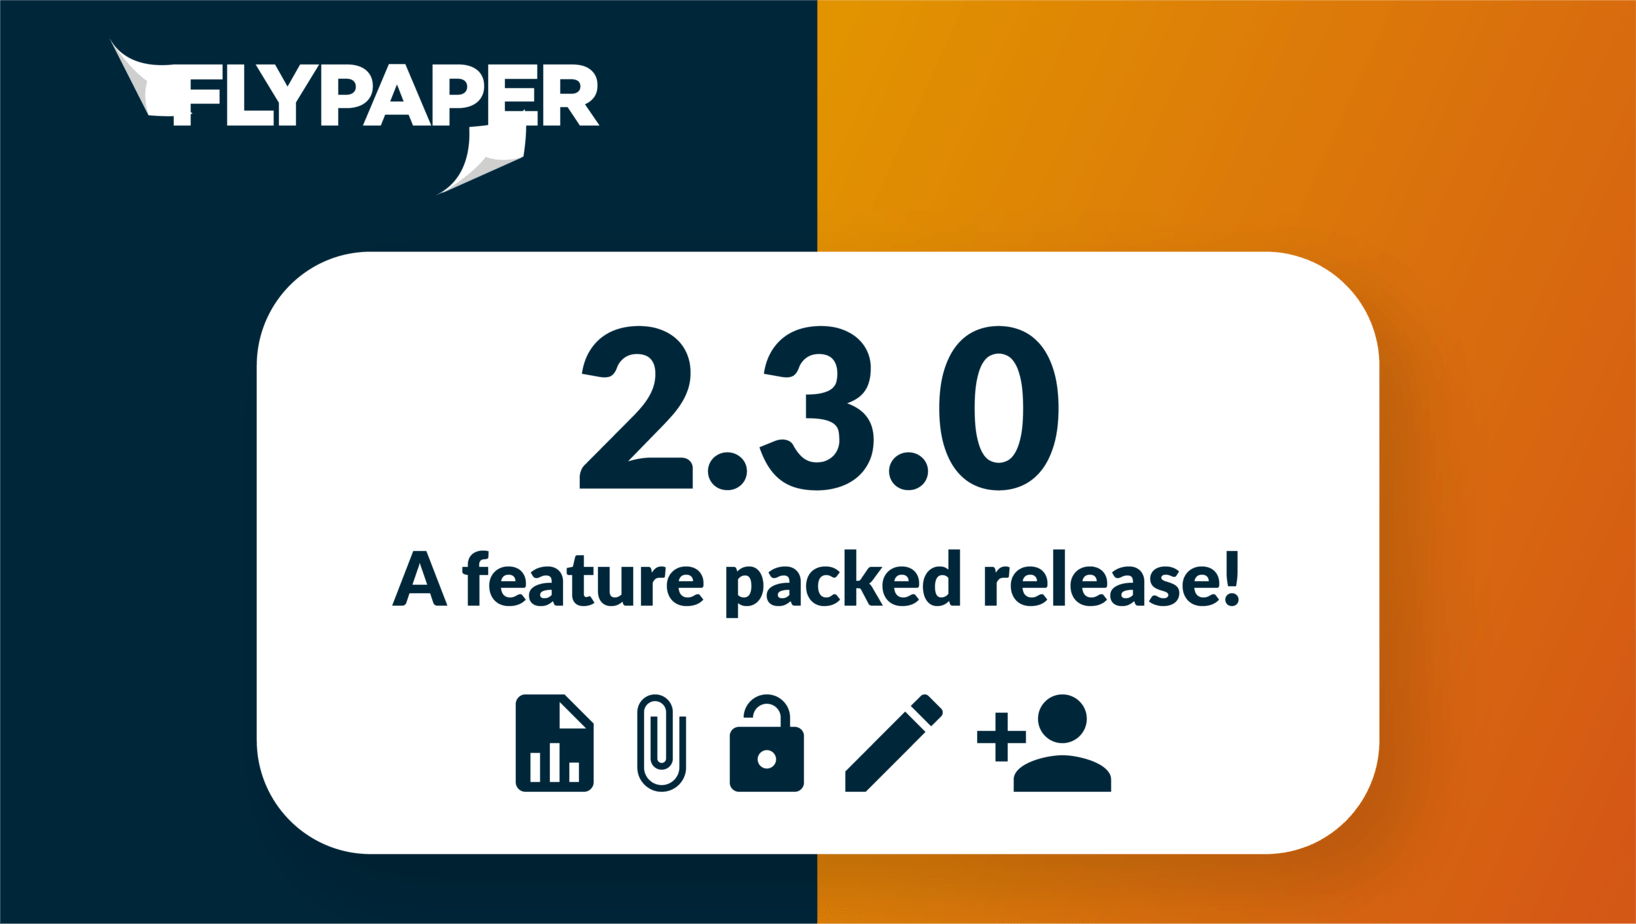 What's new in 2.3.0 🚀